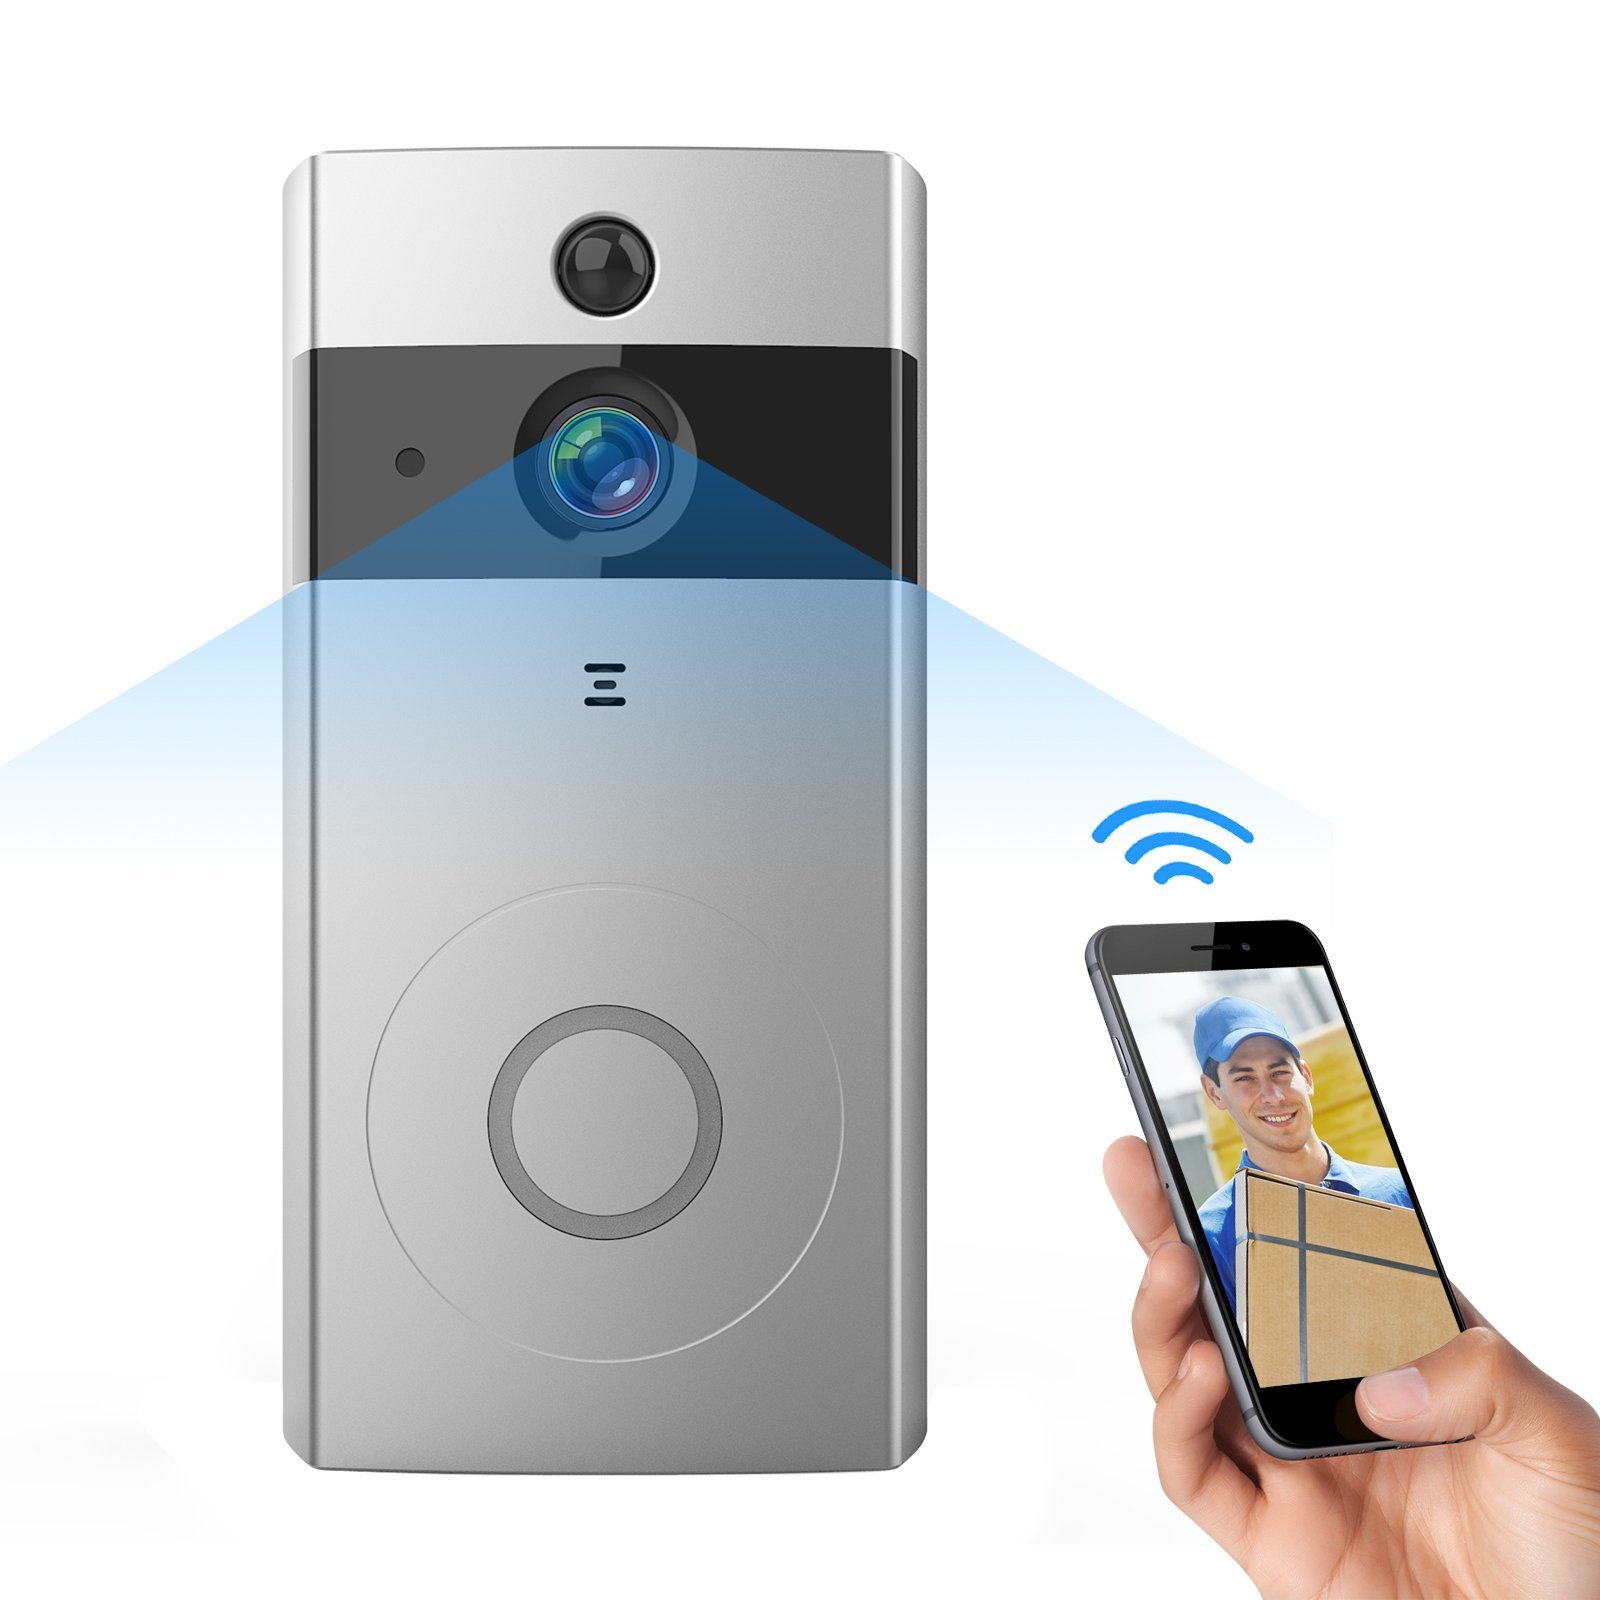 Antaivision Wire-Free WiFi Video Doorbell Camera,PIR Motion Detection,Night Vision,Two Way Audio,Built-in 8G SD Card iOS/Android APP.